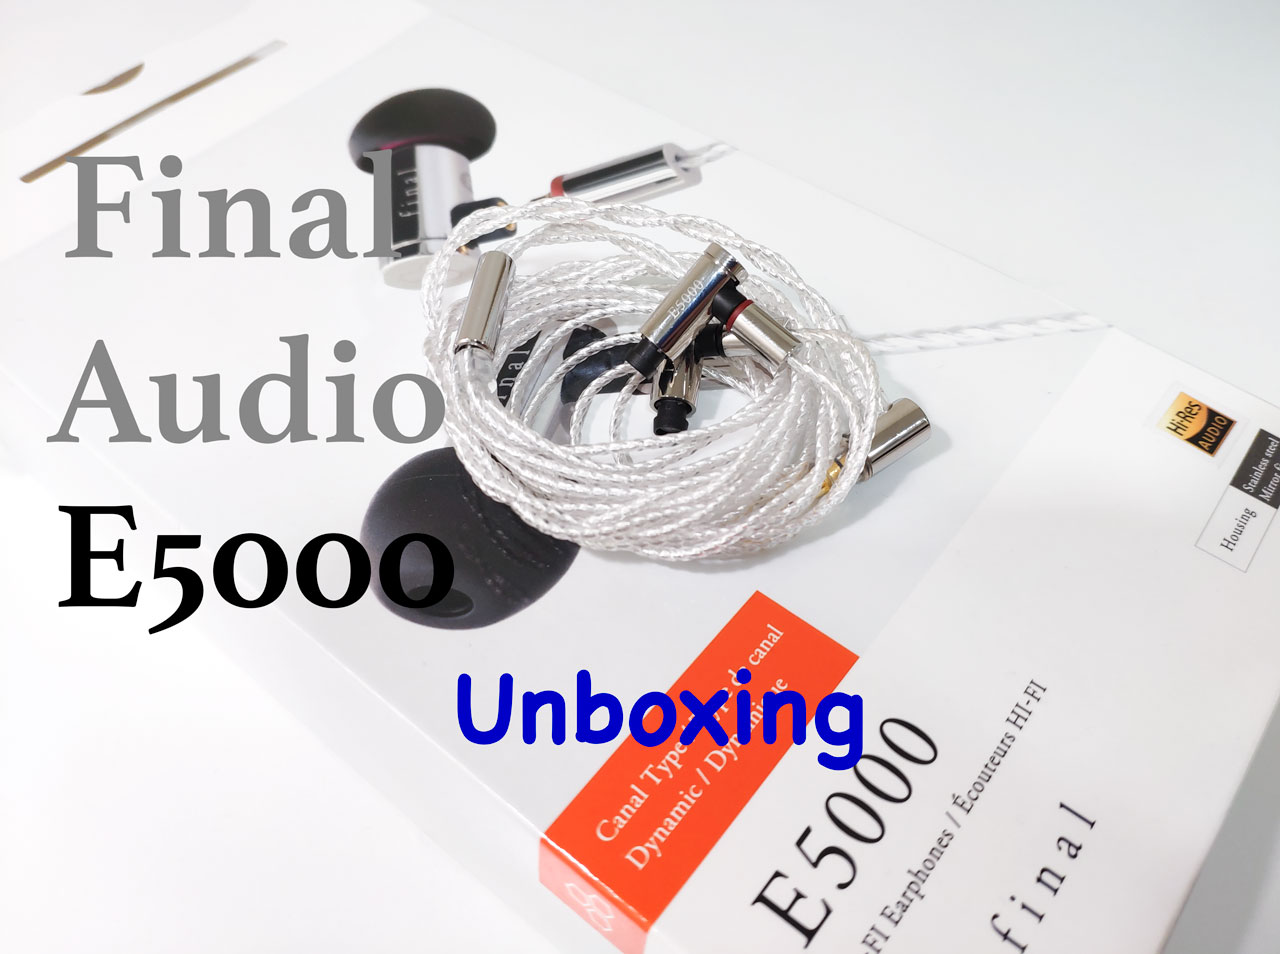 Final Audio E5000 | Unboxing